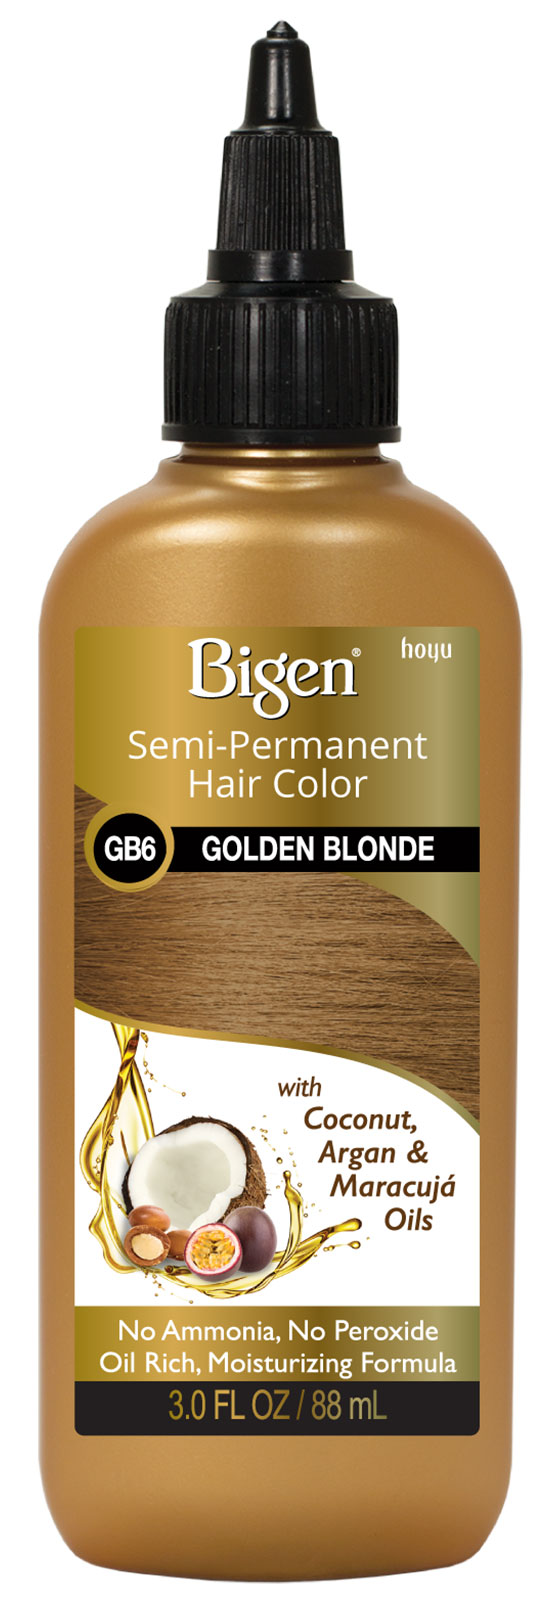 02009-Golden Blonde